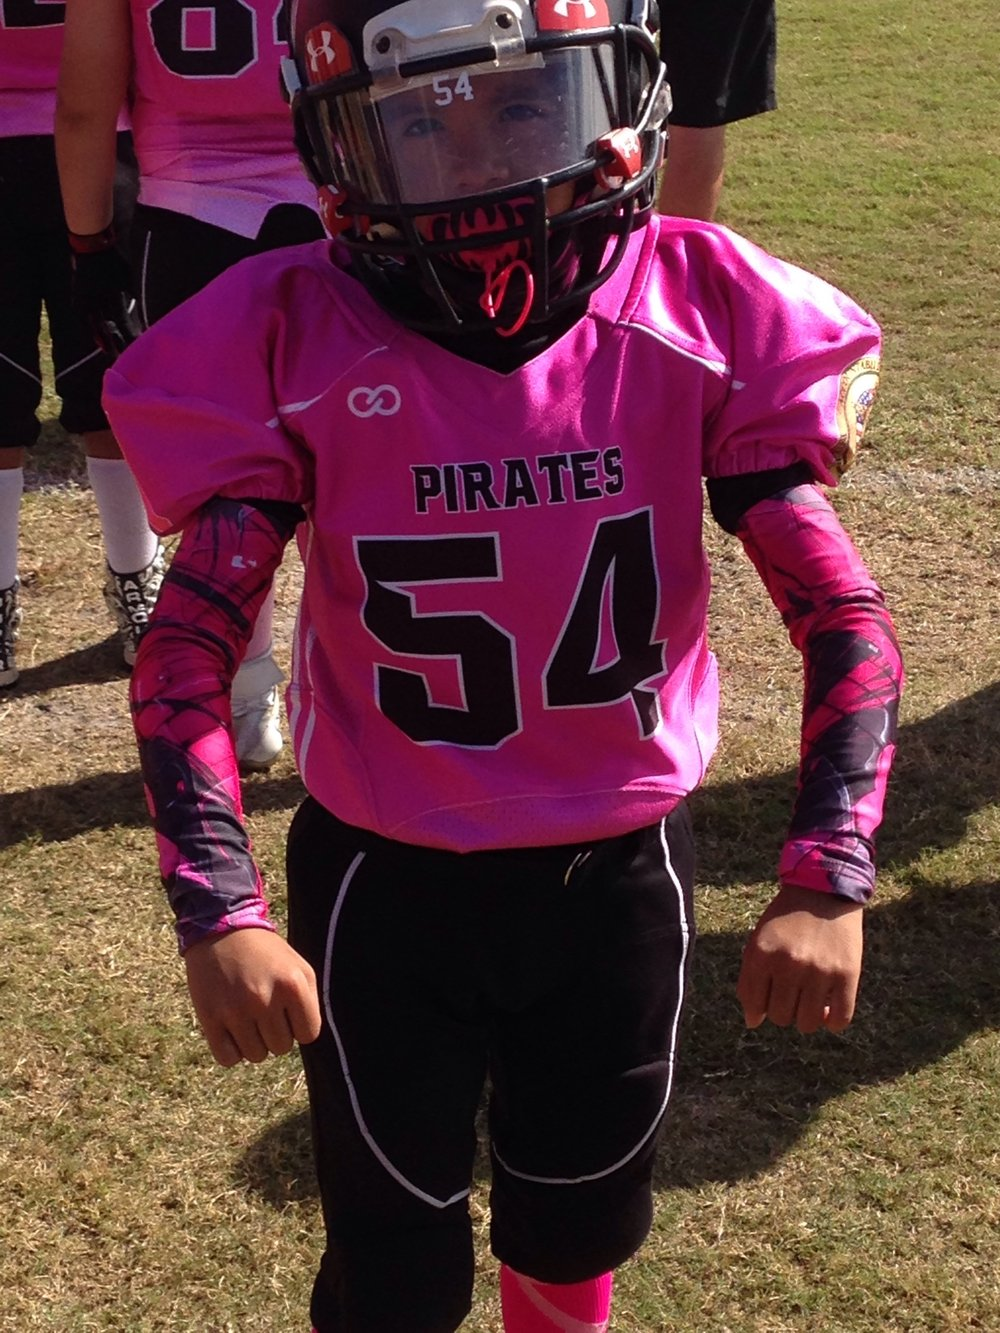 PIRATES Pink Black White Football Uniforms, Jerseys, and Pants